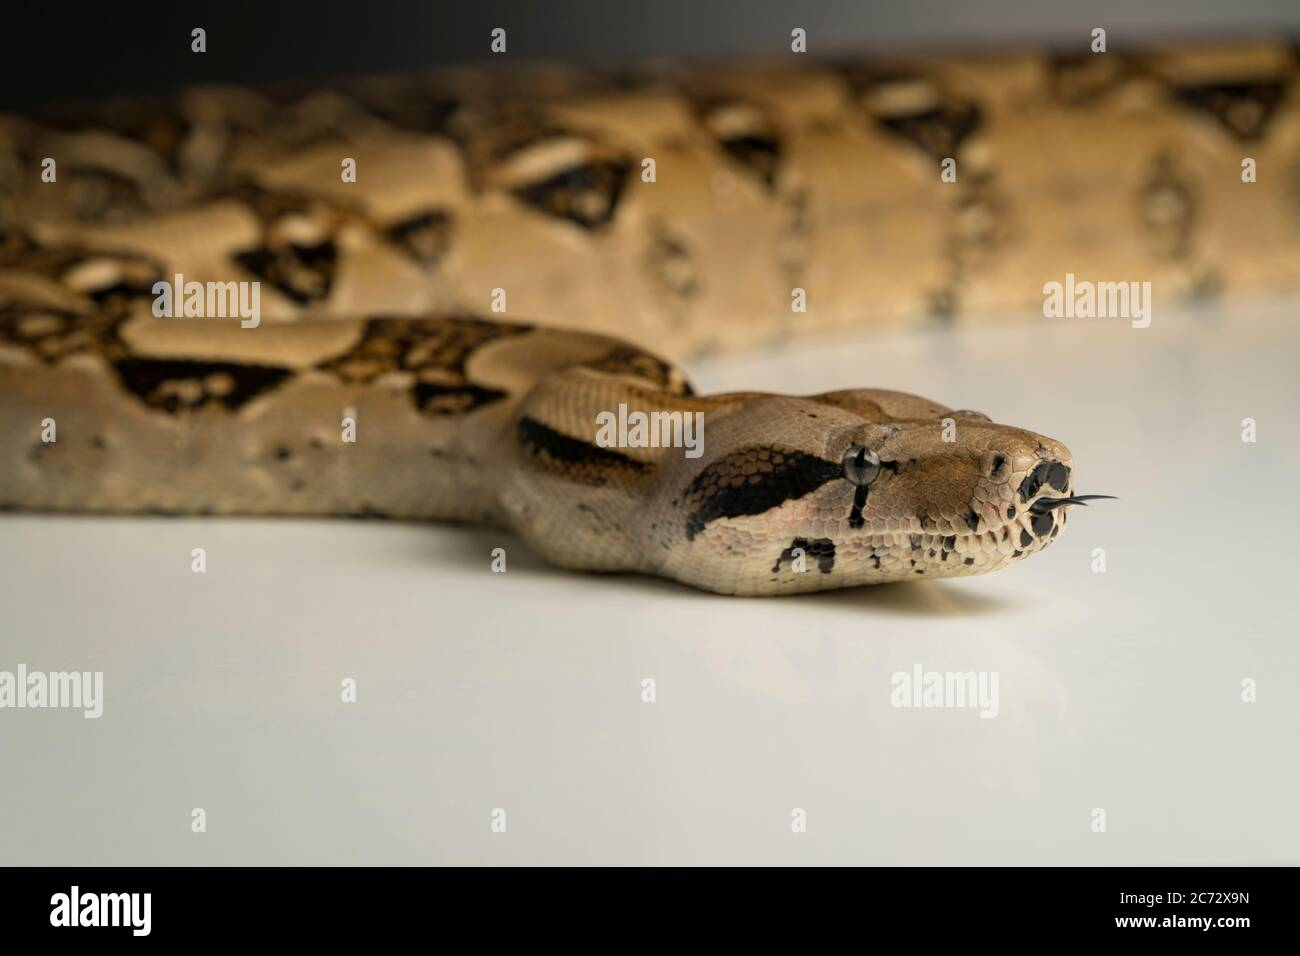 Snake On White Background High Resolution Stock Photography And Images Alamy